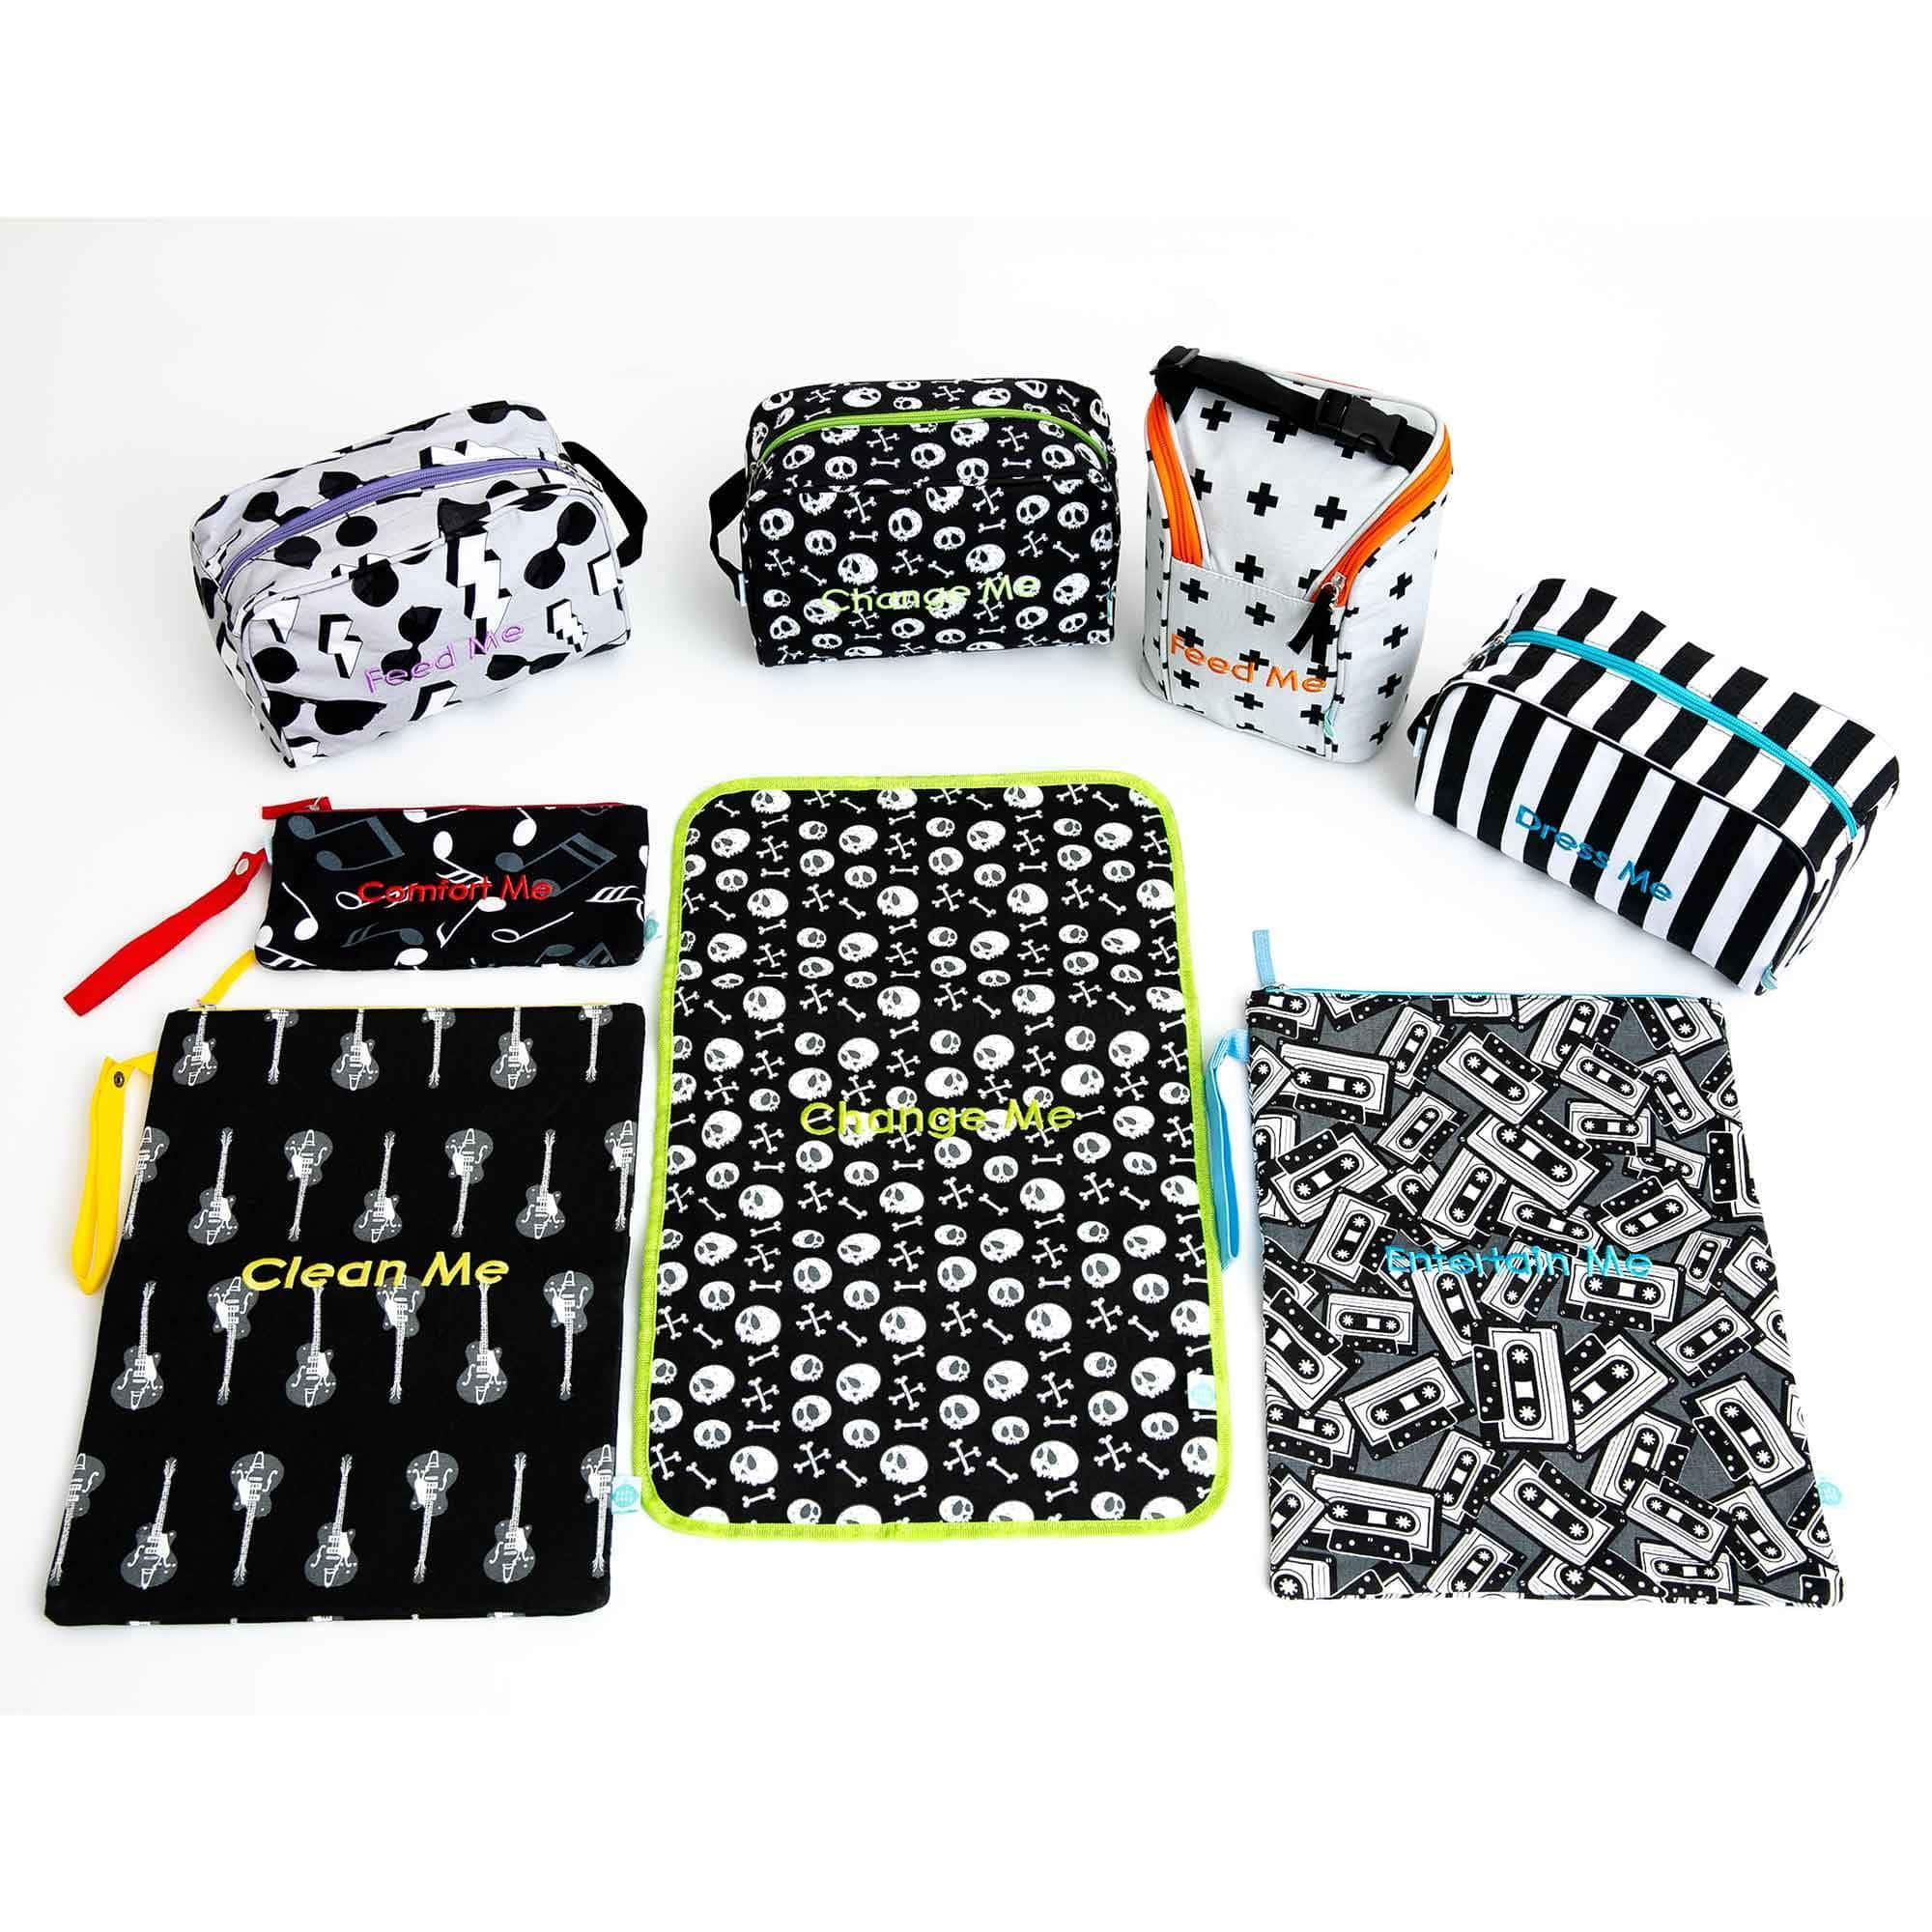 Detroit Rock City Easy Baby Travelers Complete Set of 8 - Diaper Bag Organizer Complete Set - Easy Baby Travelers